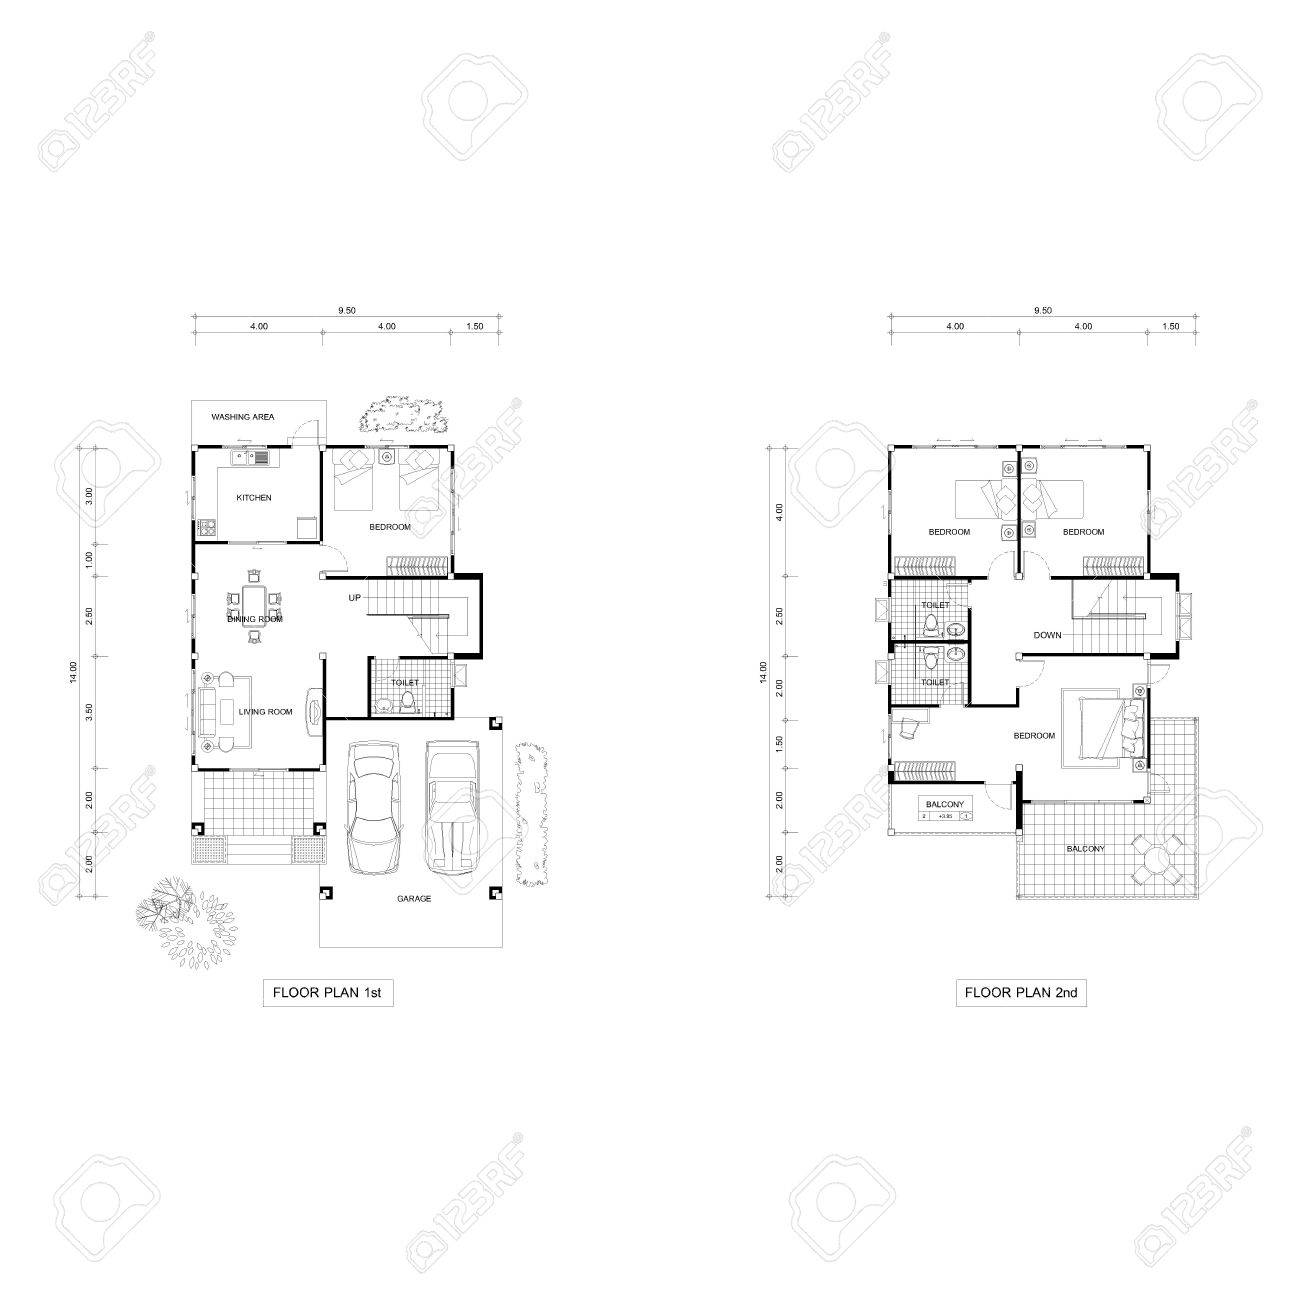 Architecture Plan Drawing Design House Plans Downstairs And. House plan drawing